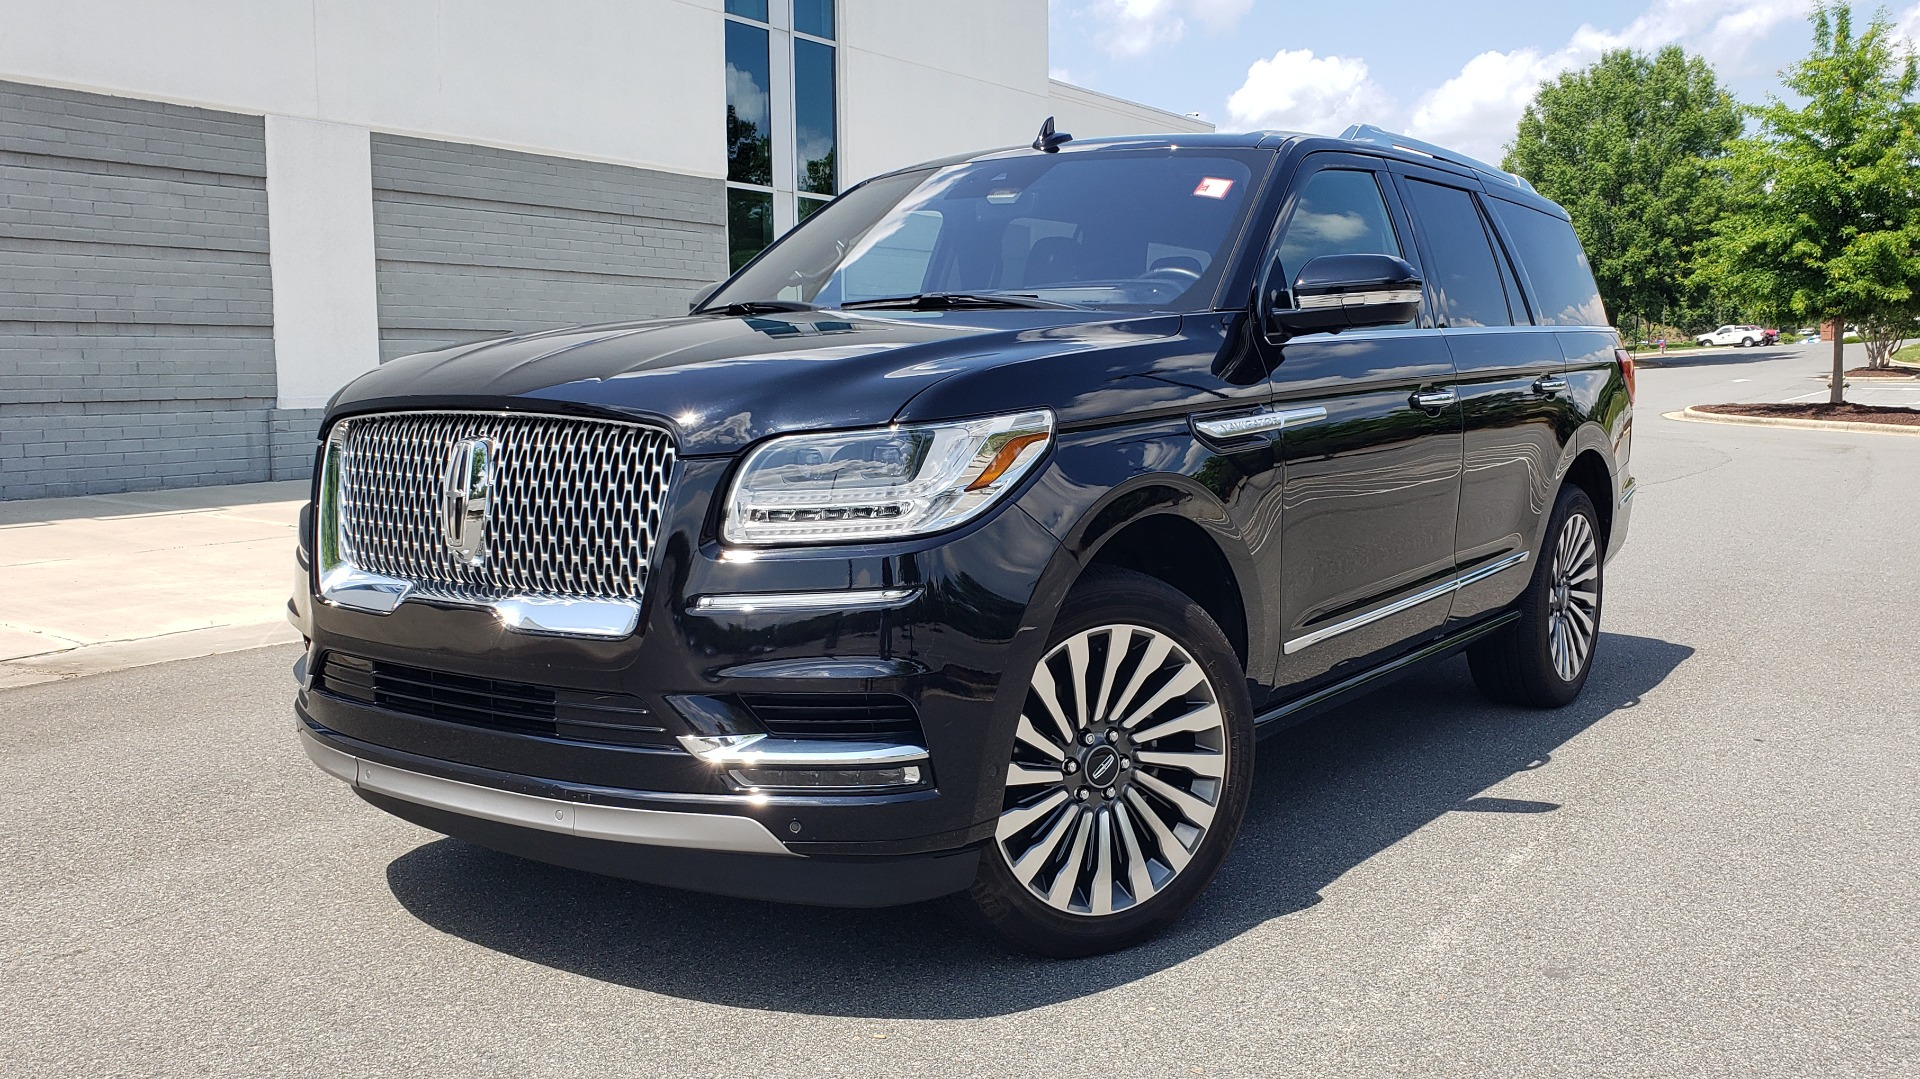 Used 2019 Lincoln NAVIGATOR RESERVE 4X4 / NAV / PANO-ROOF / REVEL ULTIMA AUDIO / 3-ROW / REARVIEW for sale $76,900 at Formula Imports in Charlotte NC 28227 1